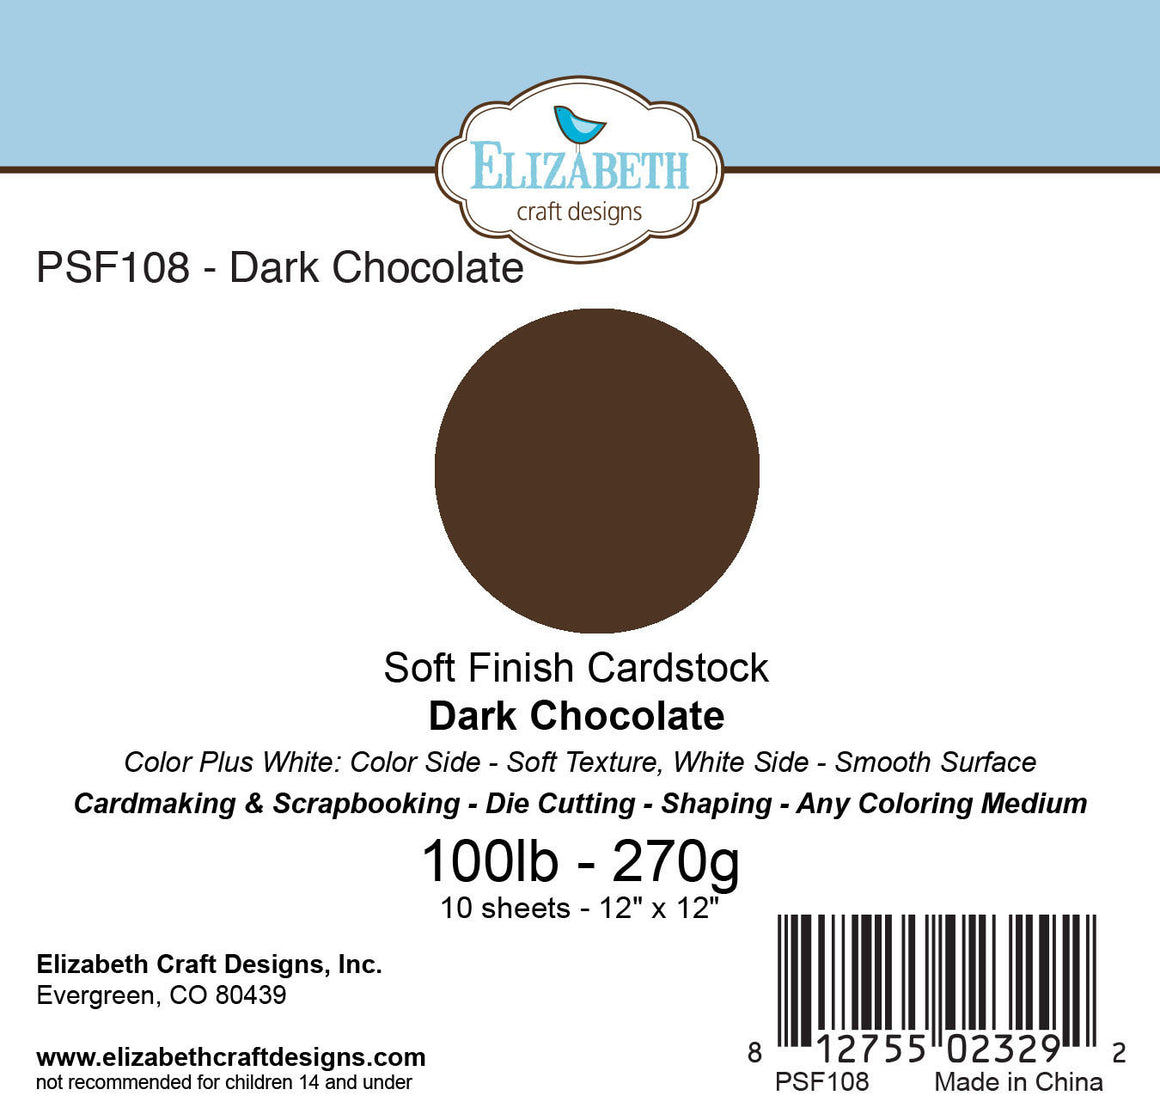 Soft Finish Cardstock, Dark Chocolate